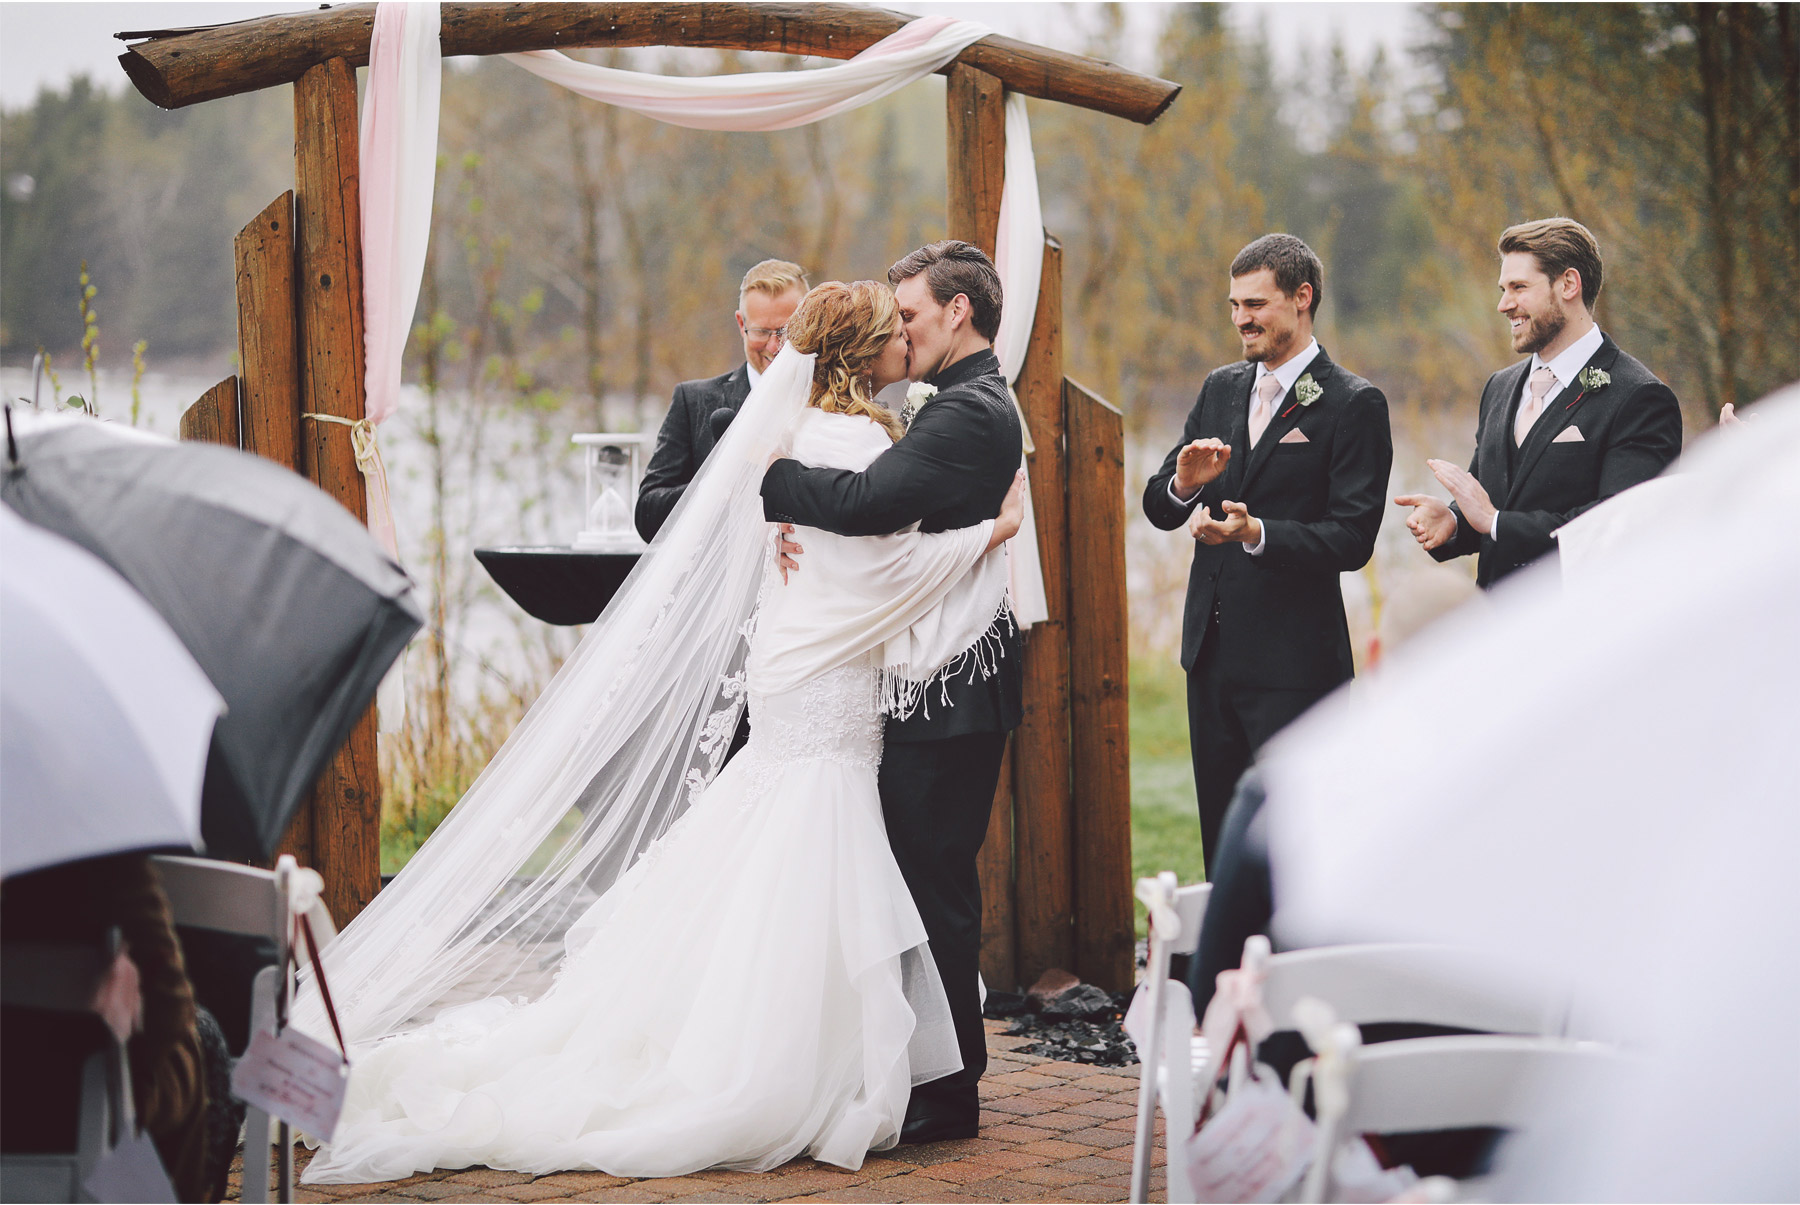 17-Minnesota-Wedding-by-Andrew-Vick-Photography-Grand-Superior-Lodge-Duluth-Two-Harbors-Outdoor-Ceremony-Kiss-Rain-Umbrellas-Veronica-and-Tyler.jpg